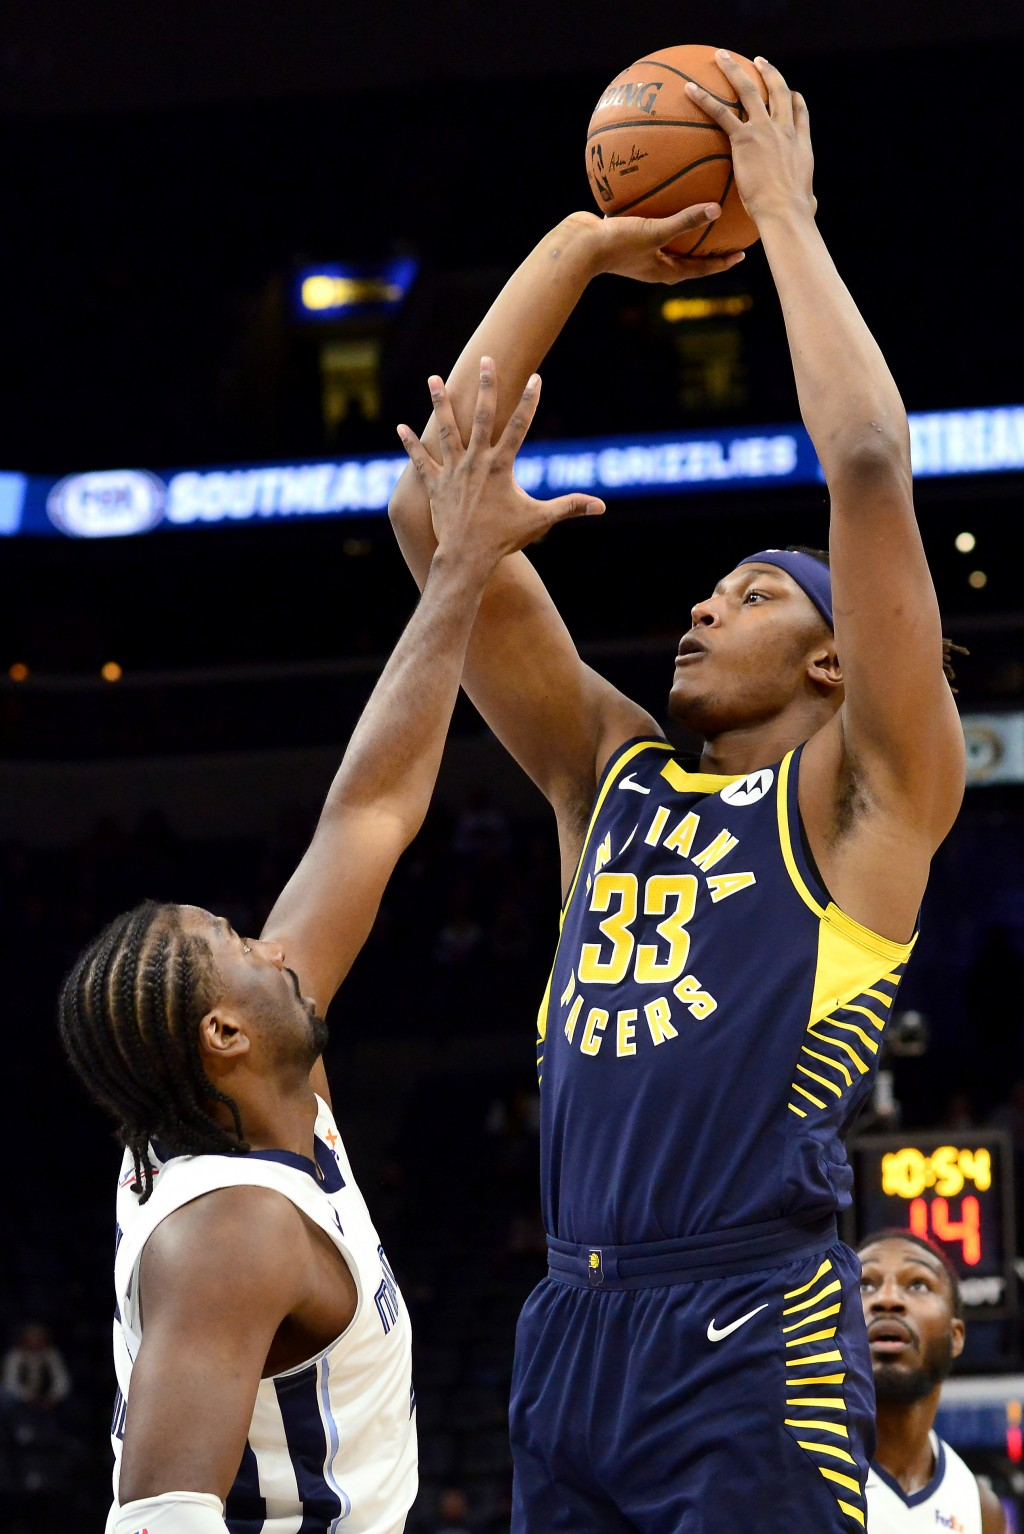 Indiana Pacers center Myles Turner (33) shoots against Memphis Grizzlies forward Solomon Hill, left, in the first half of an NBA basketball game Monda...